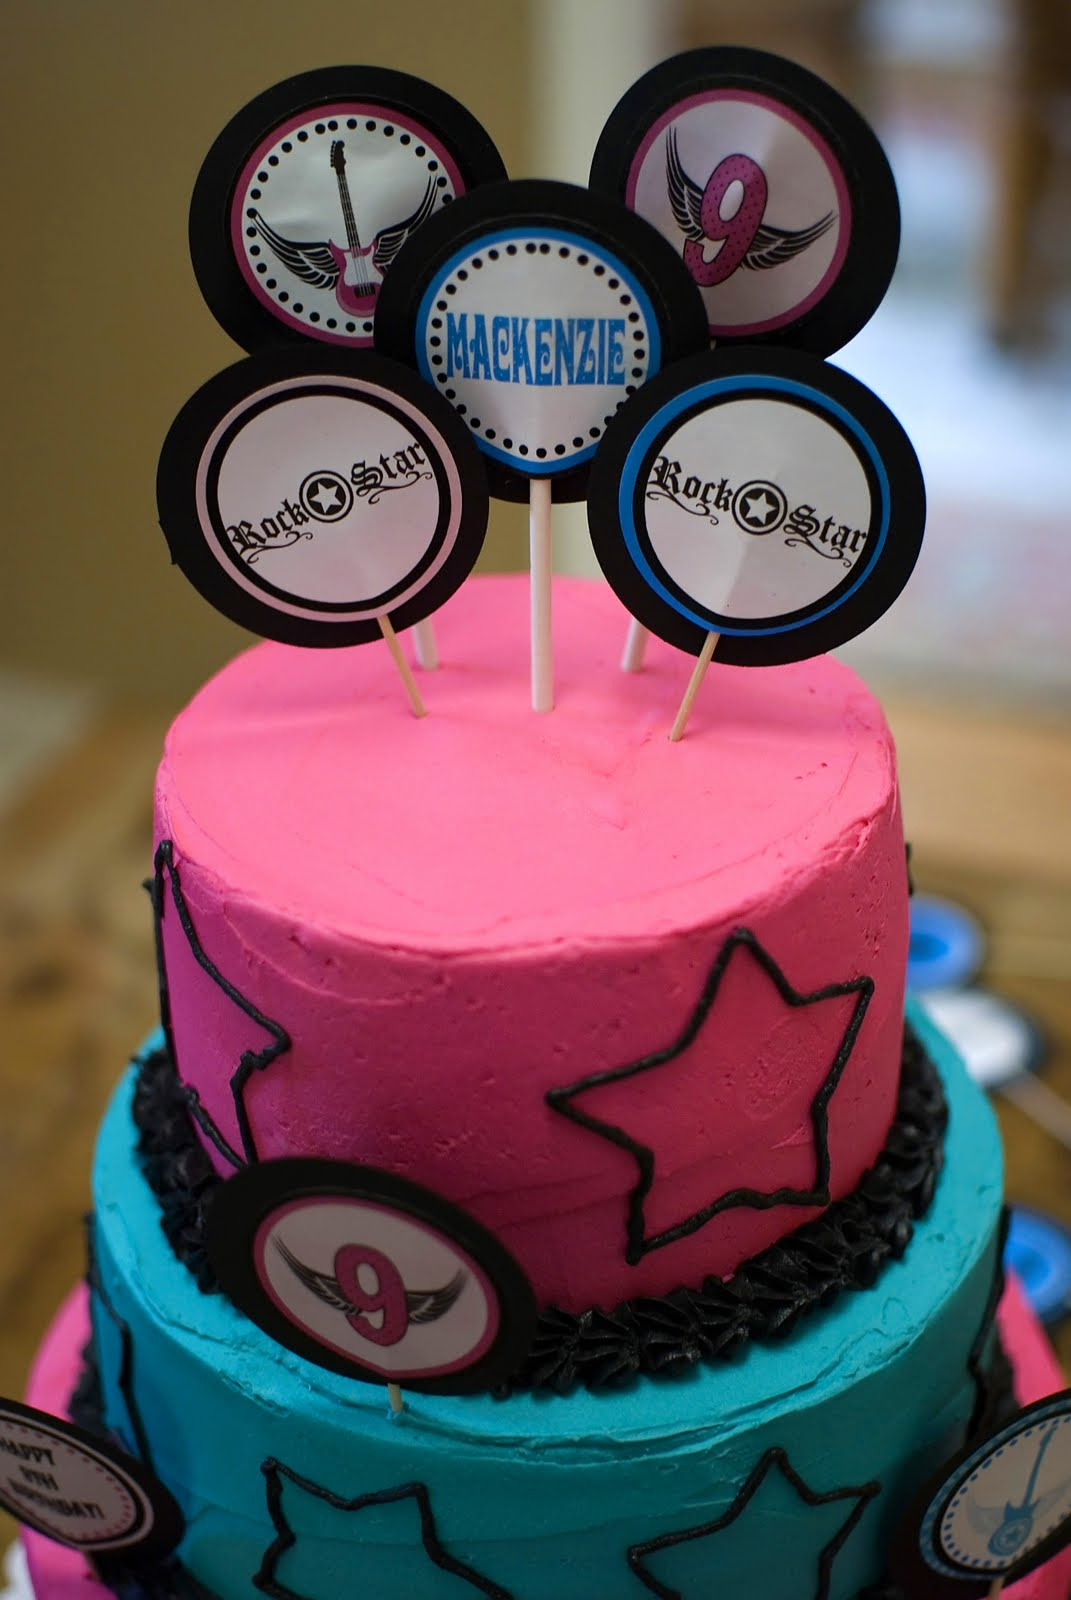 Whodathunkit Cakes Birthday Wedding And Special Occasion Custom